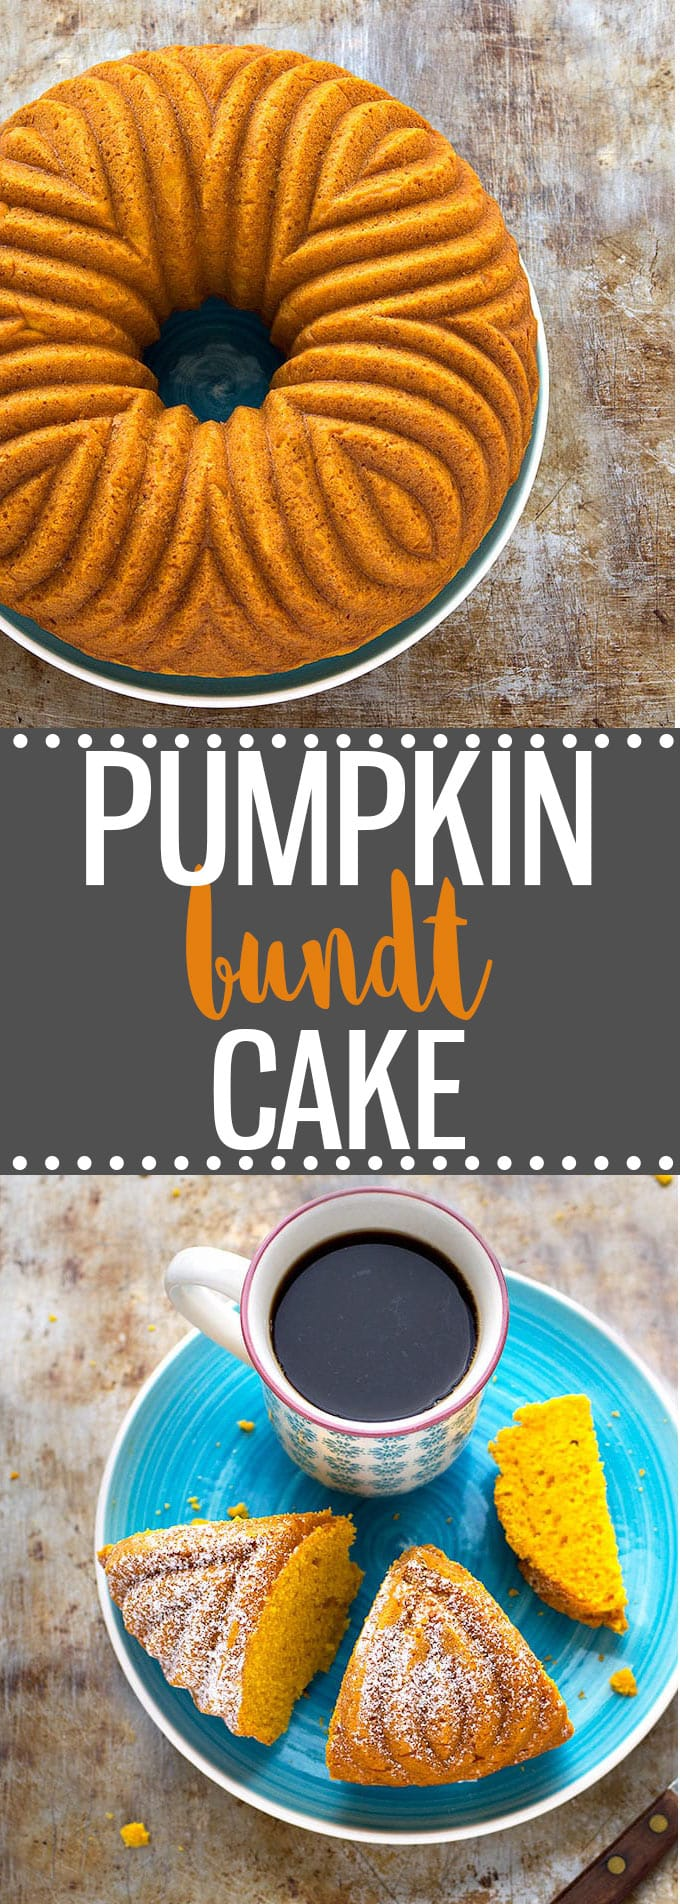 Easy Pumpkin Bundt Cake – Perfectly sweet, subtly spiced, moist, soft, tender, and bursting with fall flavors! Great for breakfast, as a snack, or as a dessert. #pumpkin #bundt #cake #dessert #easyrecipe #fall #autumn #baking #thanksgiving #halloween